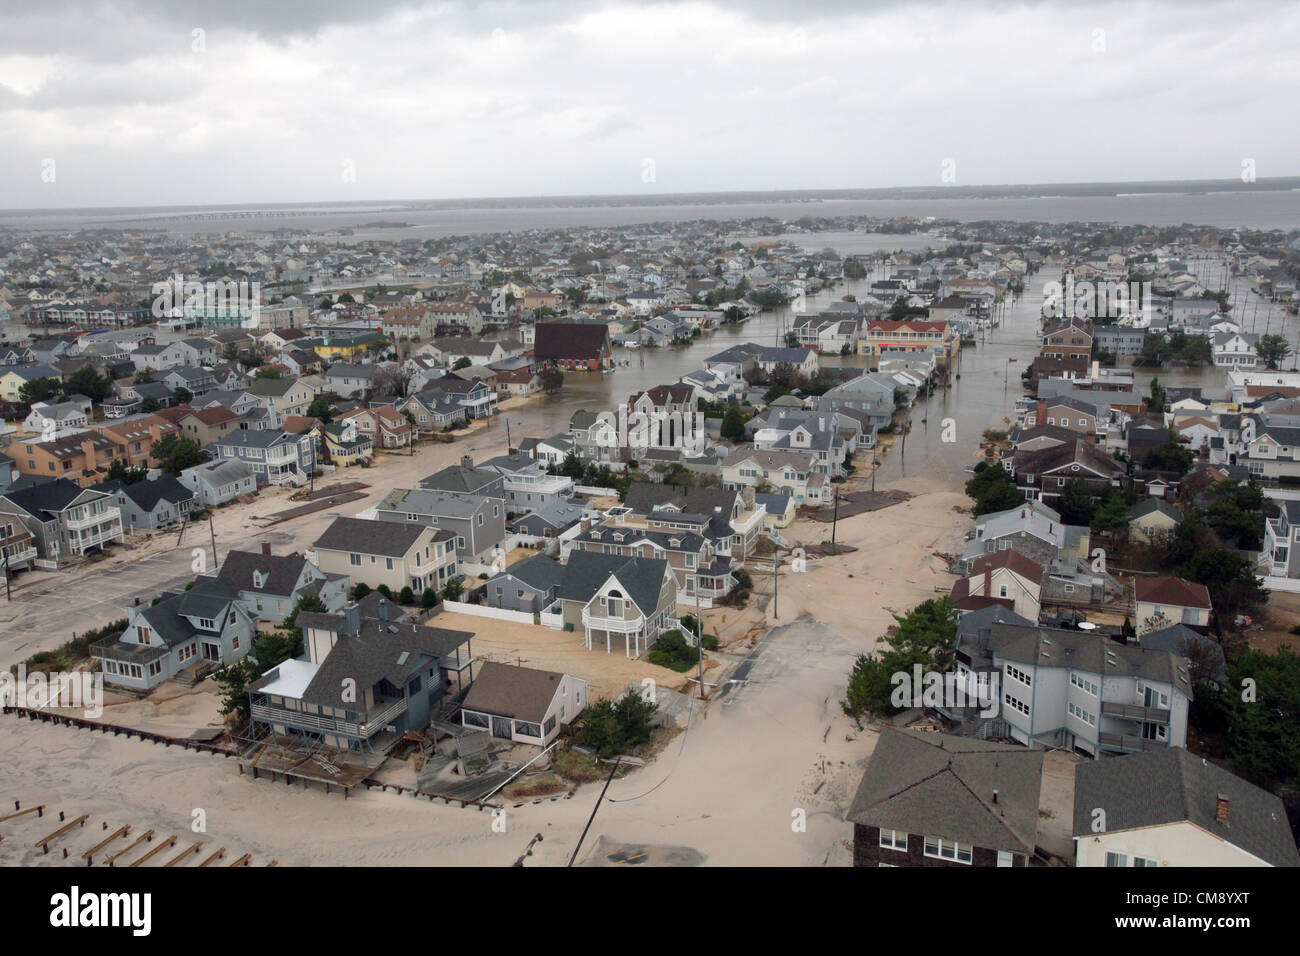 Aerial views of the damage caused by Hurricane Sandy to the New Jersey coast taken during a search and rescue mission - Stock Image